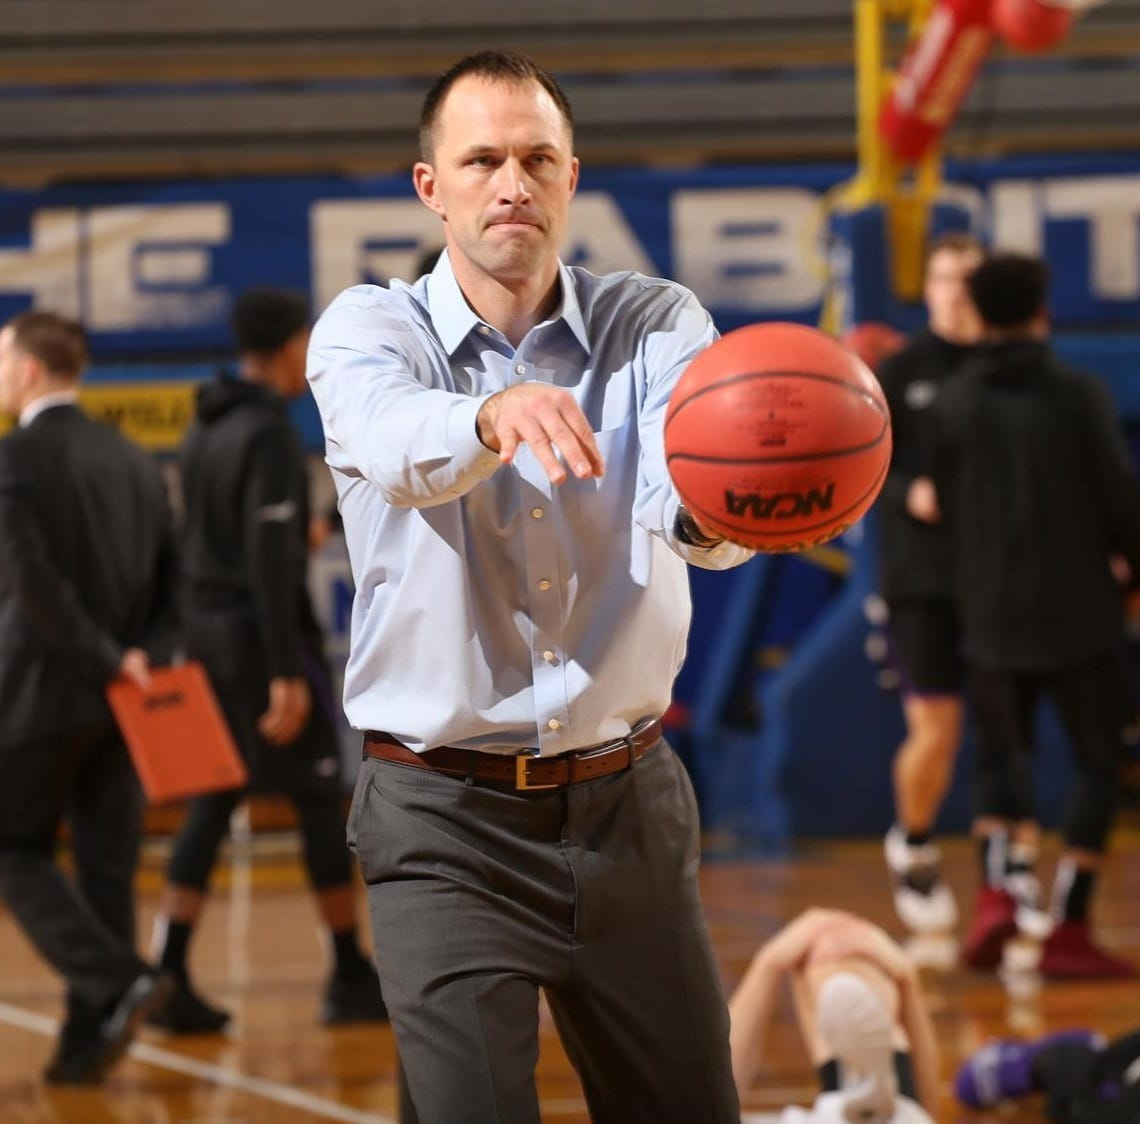 Meet the coach: Q&A with South Dakota State's Eric Henderson